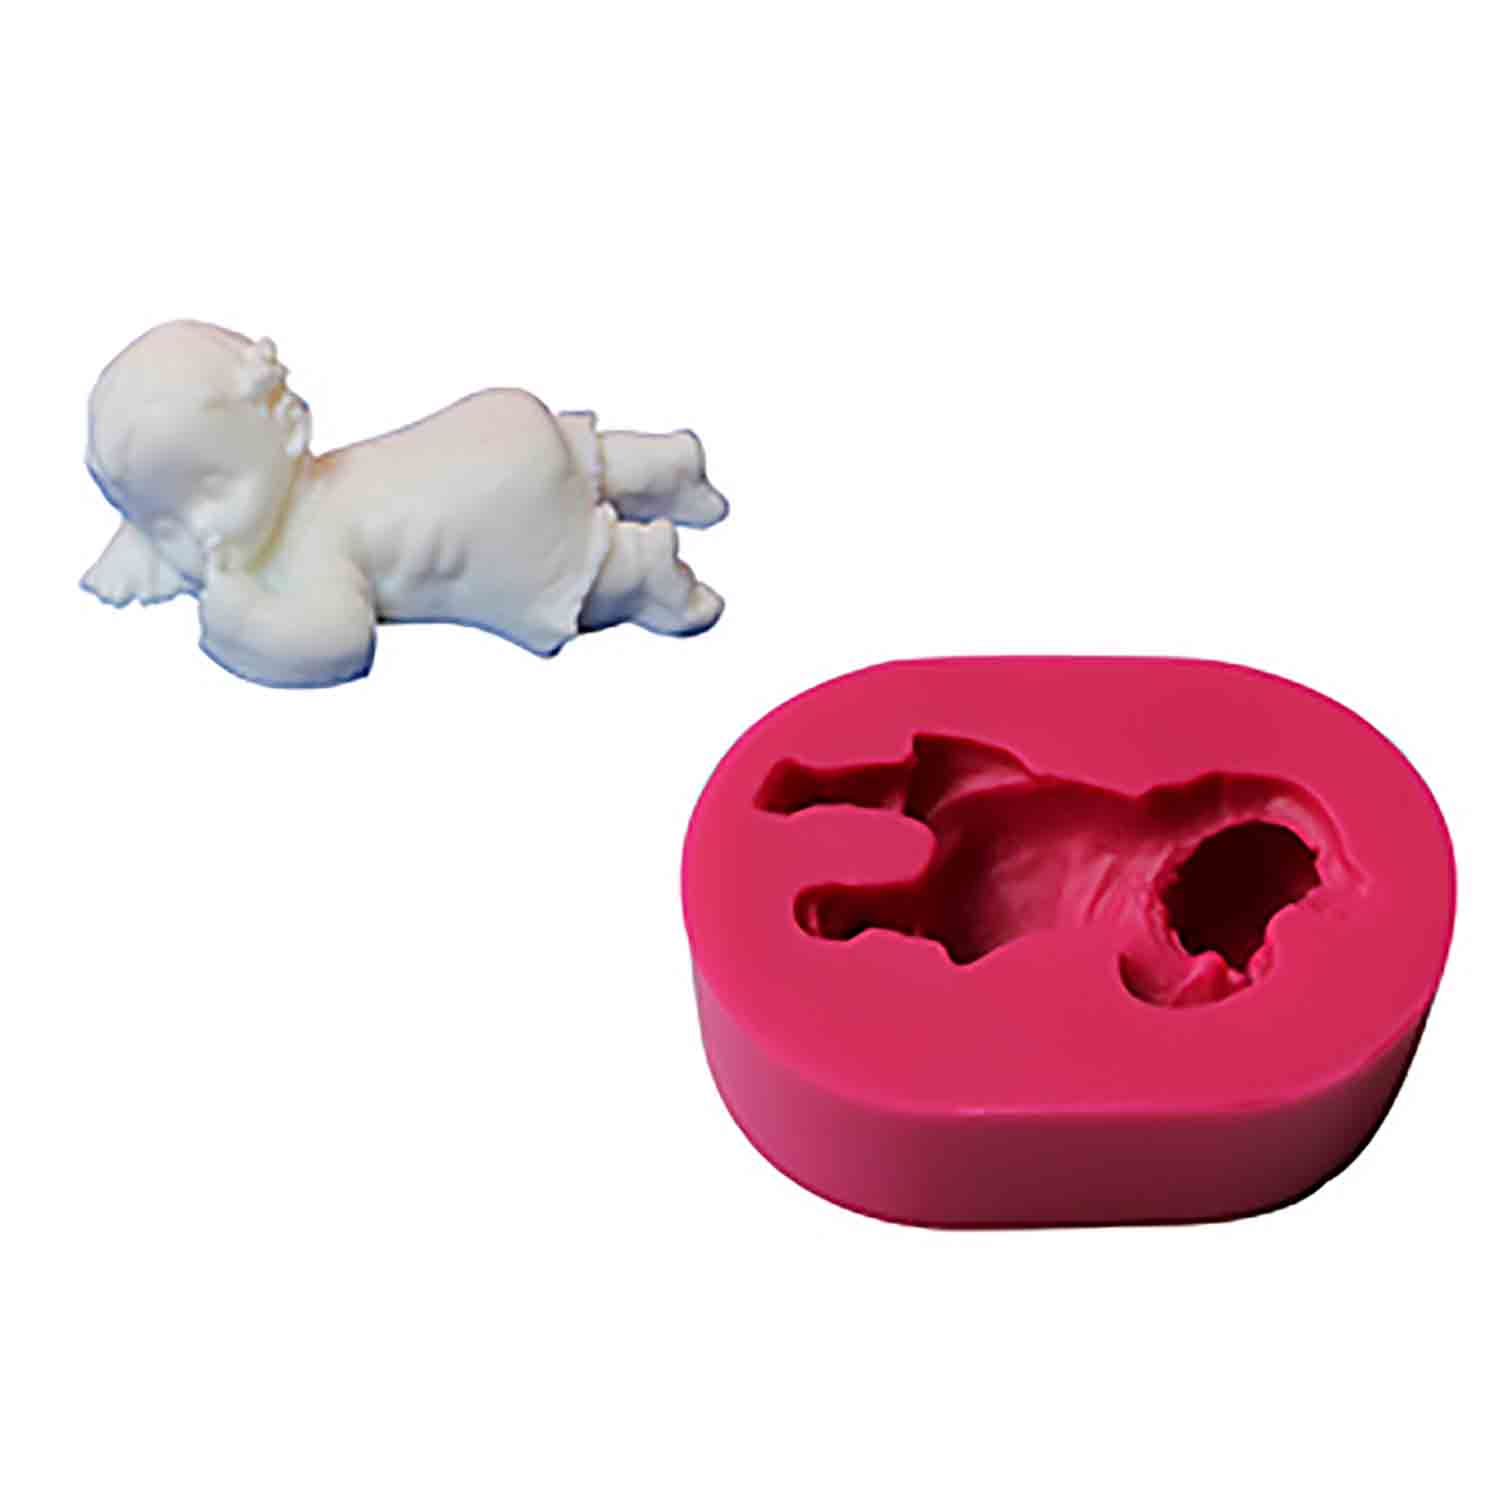 Sleeping Baby Silicone Mold